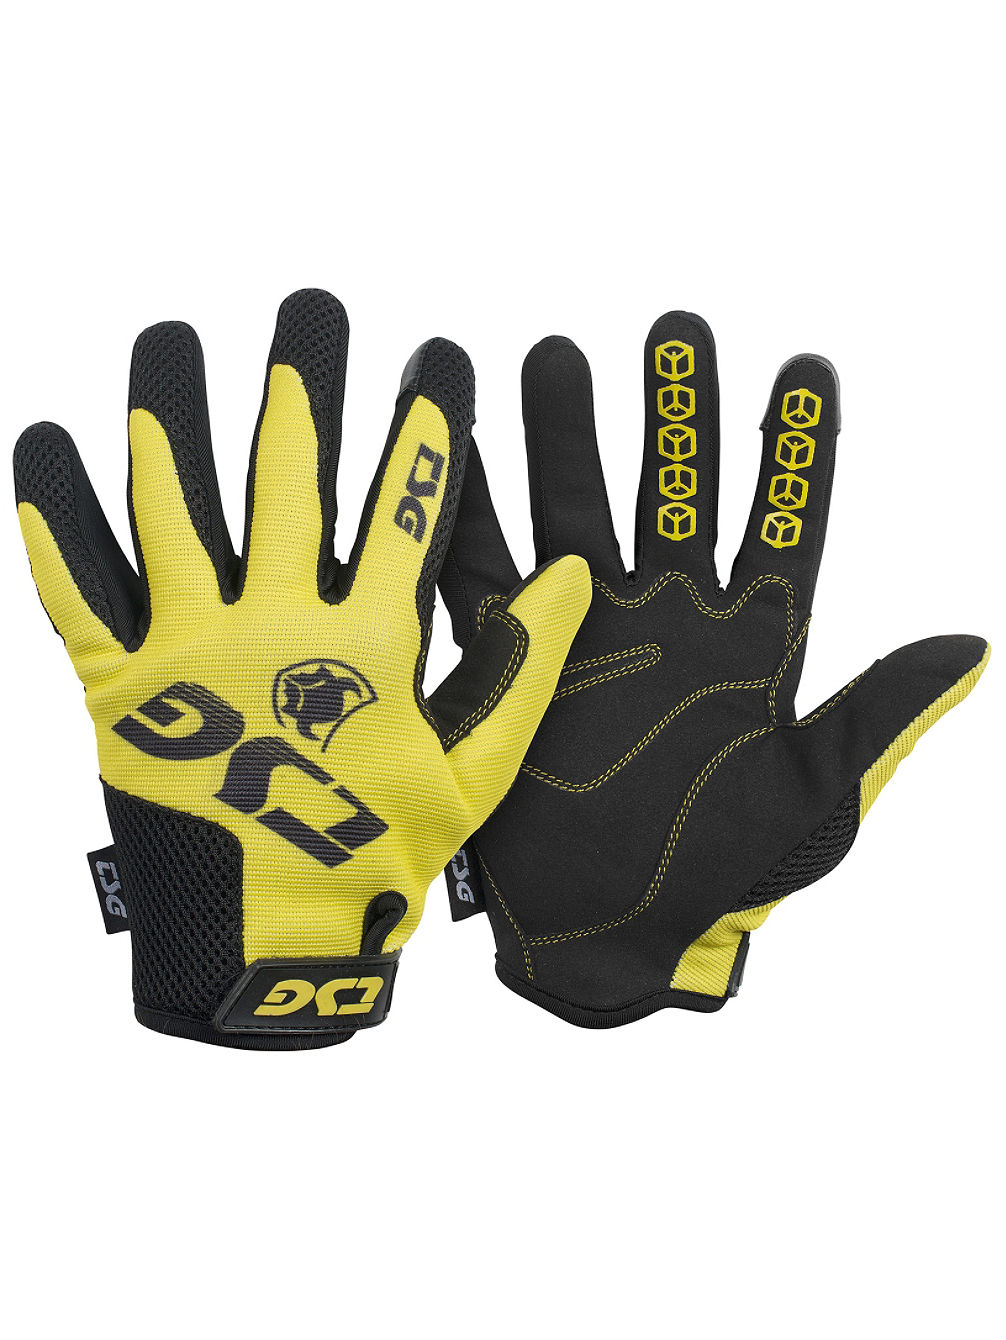 Patrol Bike Gloves